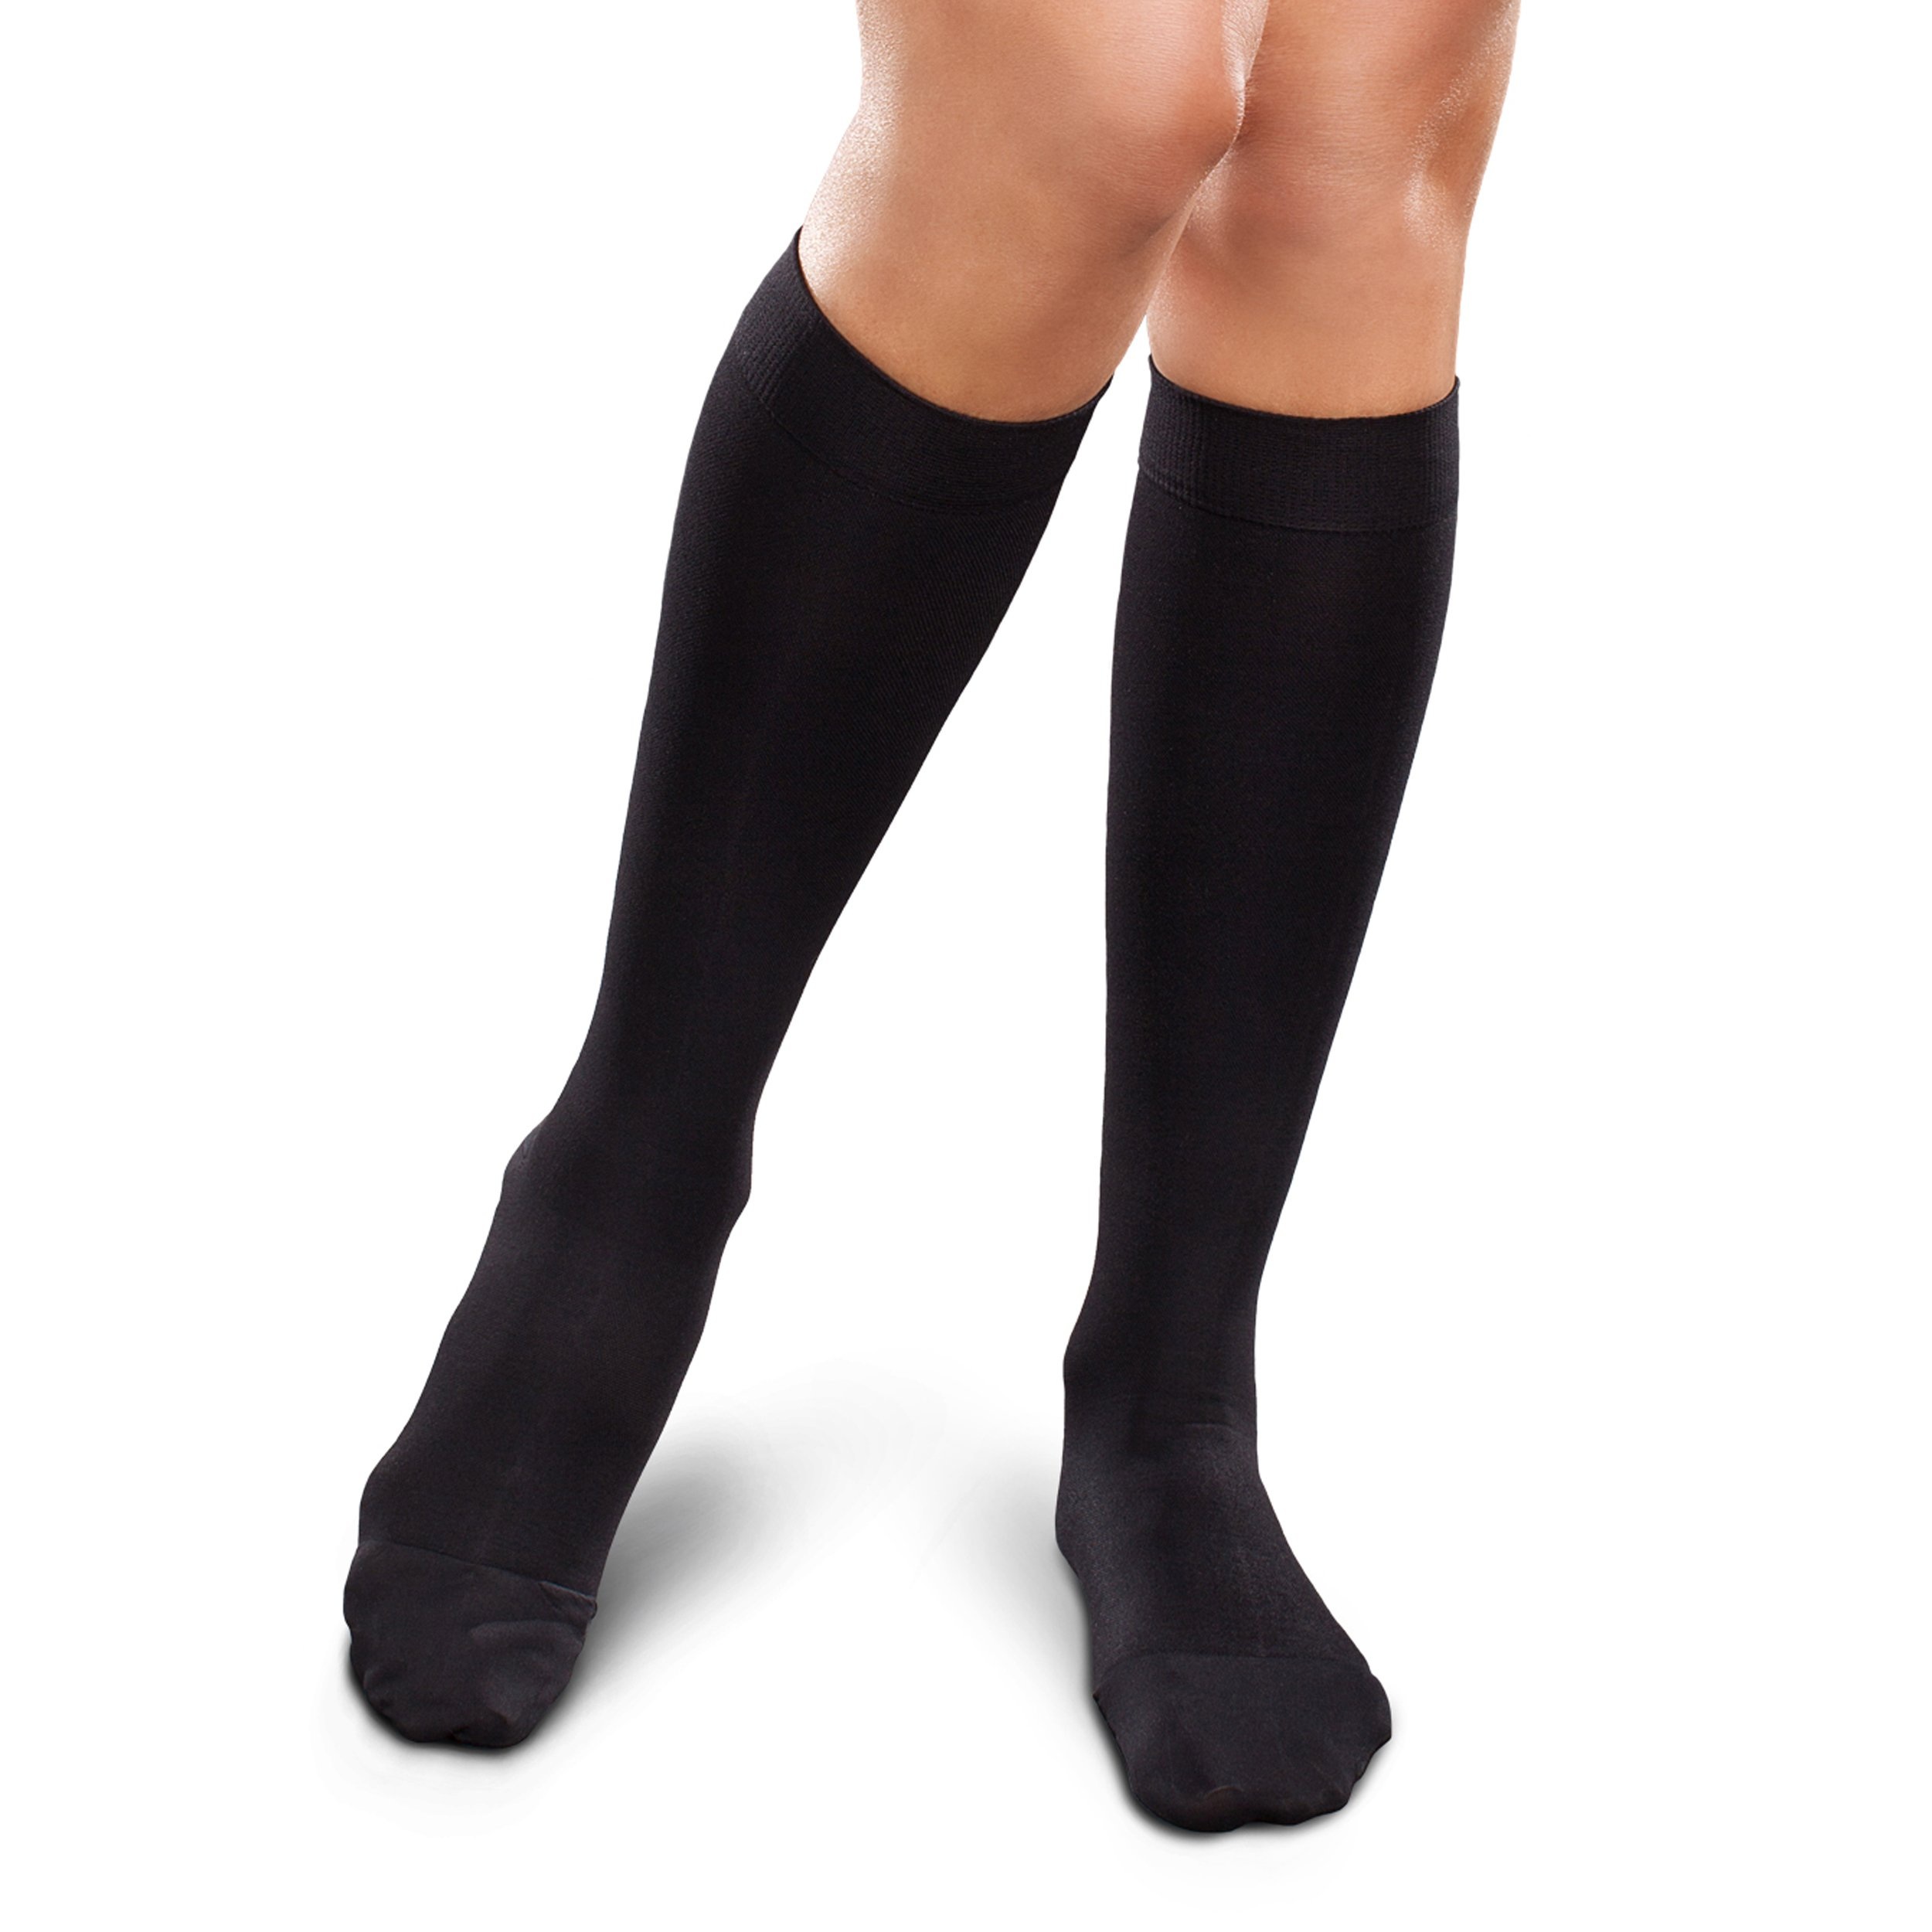 Therafirm Opaque Women's Knee High Support Stockings - Mild (15-20mmHg) Graduated Compression Nylons (Black, Medium Short)